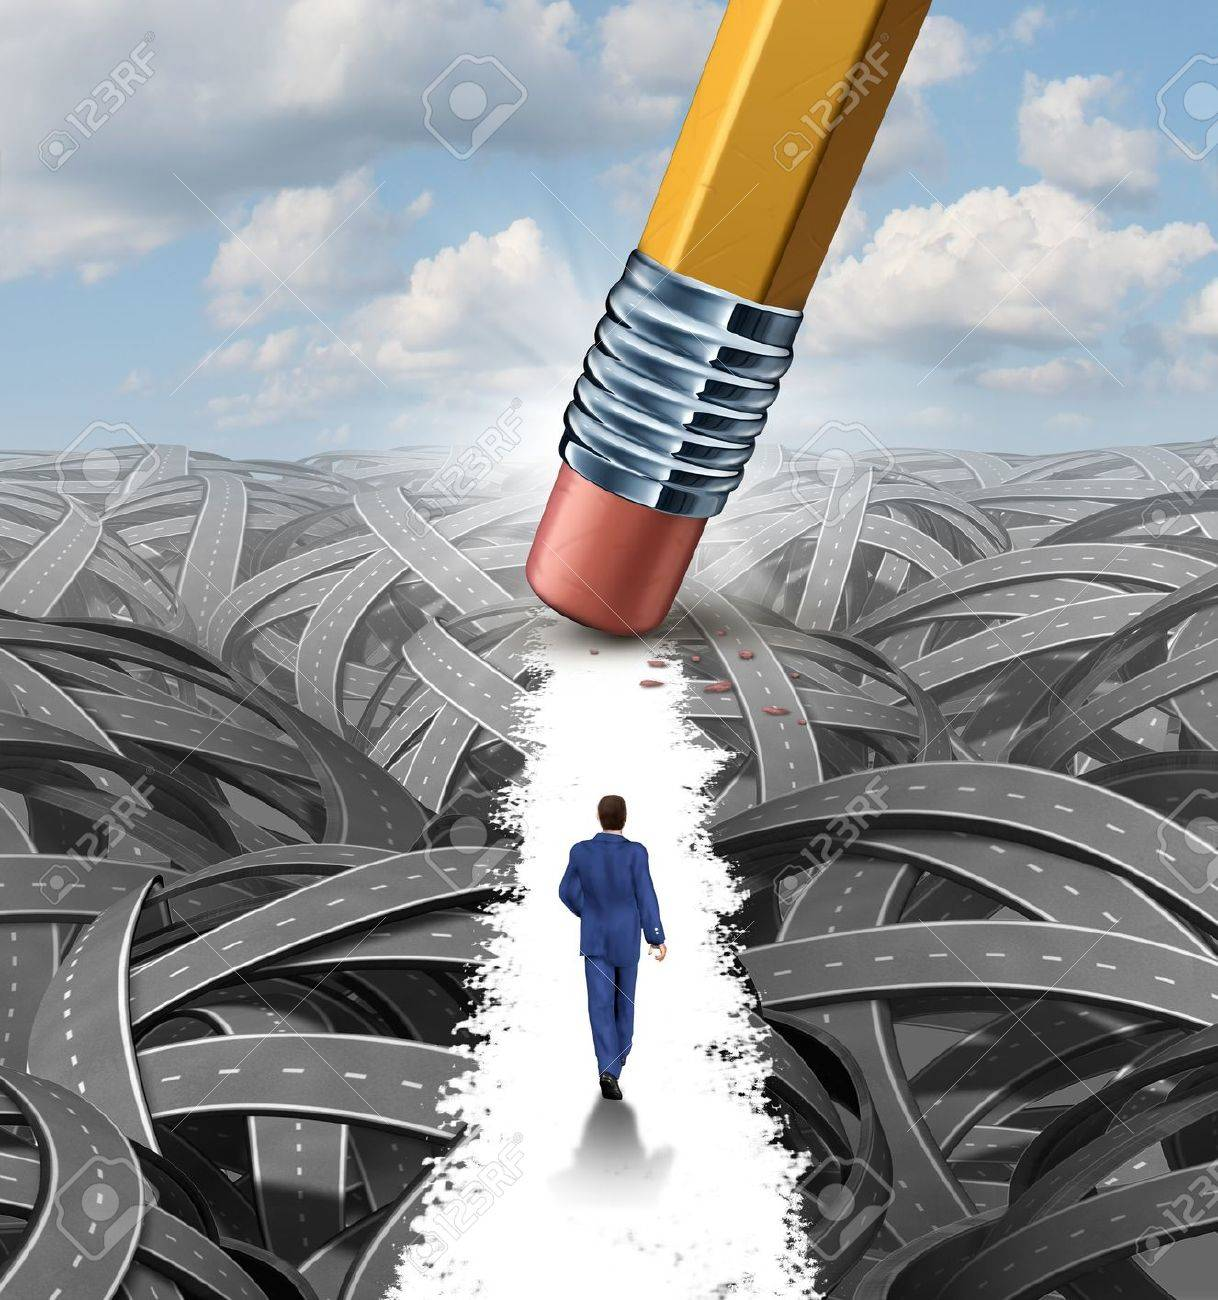 Clear the confusion leadership solutions with a businessman walking through a group of tangled roads opened up by a pencil eraser as a business concept of innovative thinking for financial success - 20688382